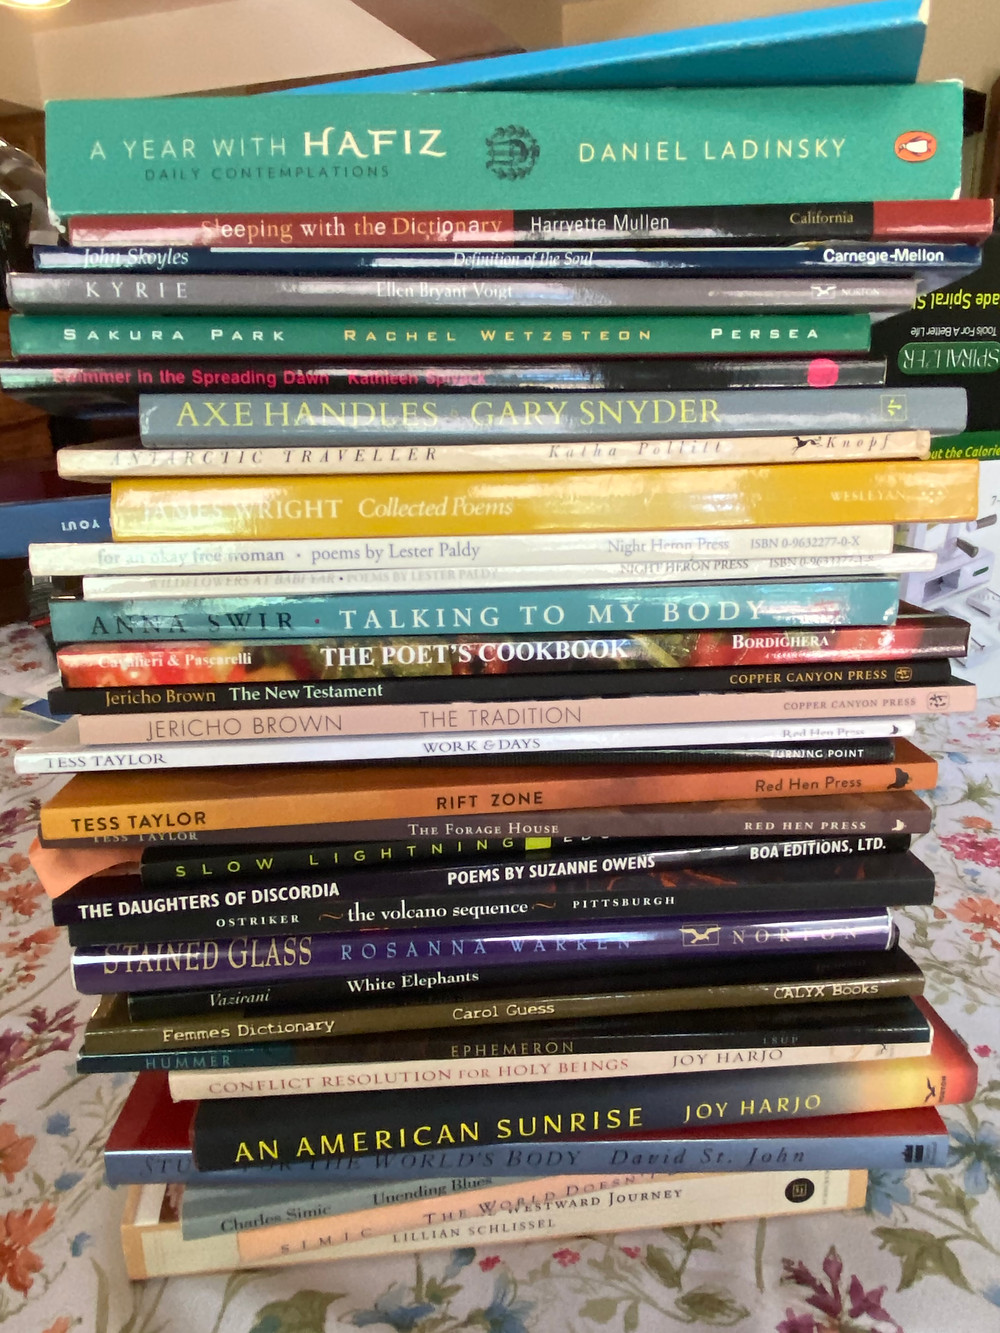 That's right this part of my stack--the rest is coming in from Black Lawrence Press